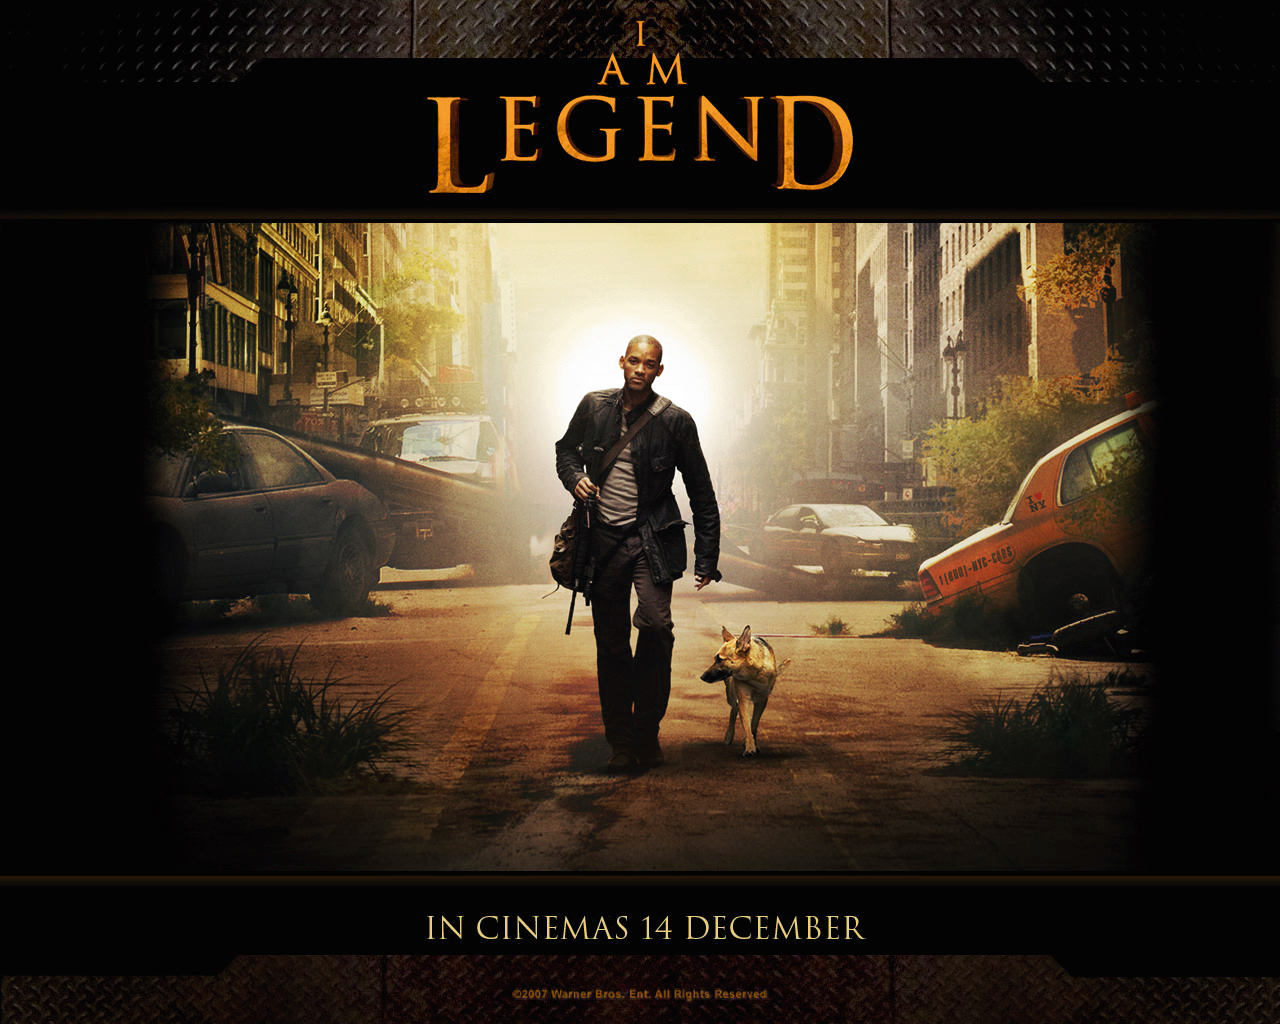 i am legend book vs movie Darkseekers are vampires in the 2007 film adaption, i am legend they are the humans susceptible.